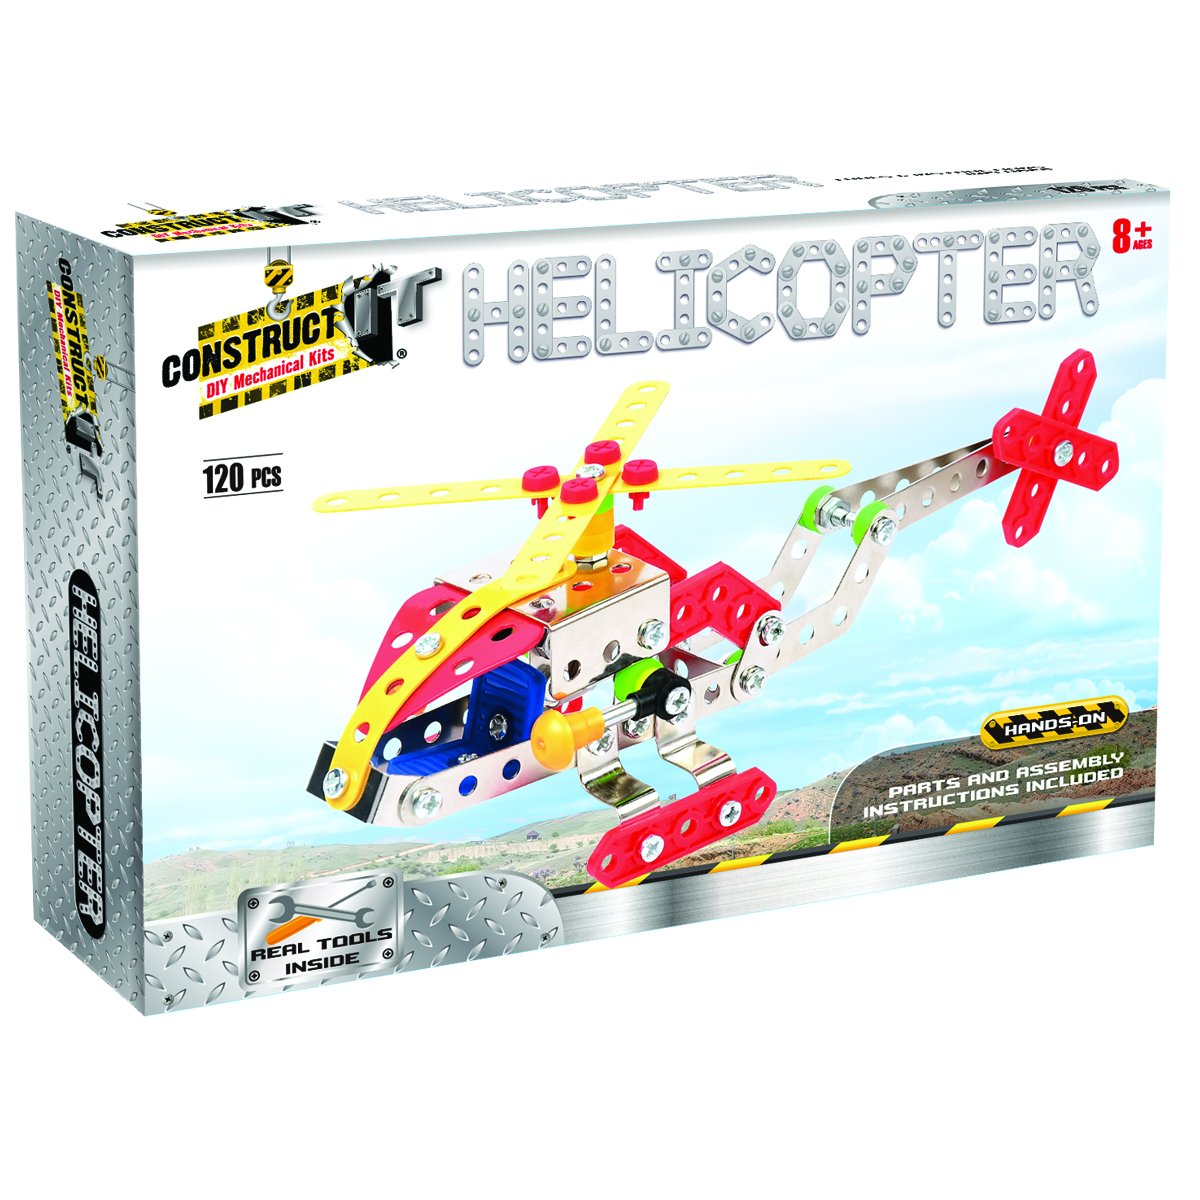 Construct It Kit - Helicopter | Card Merchant NZ